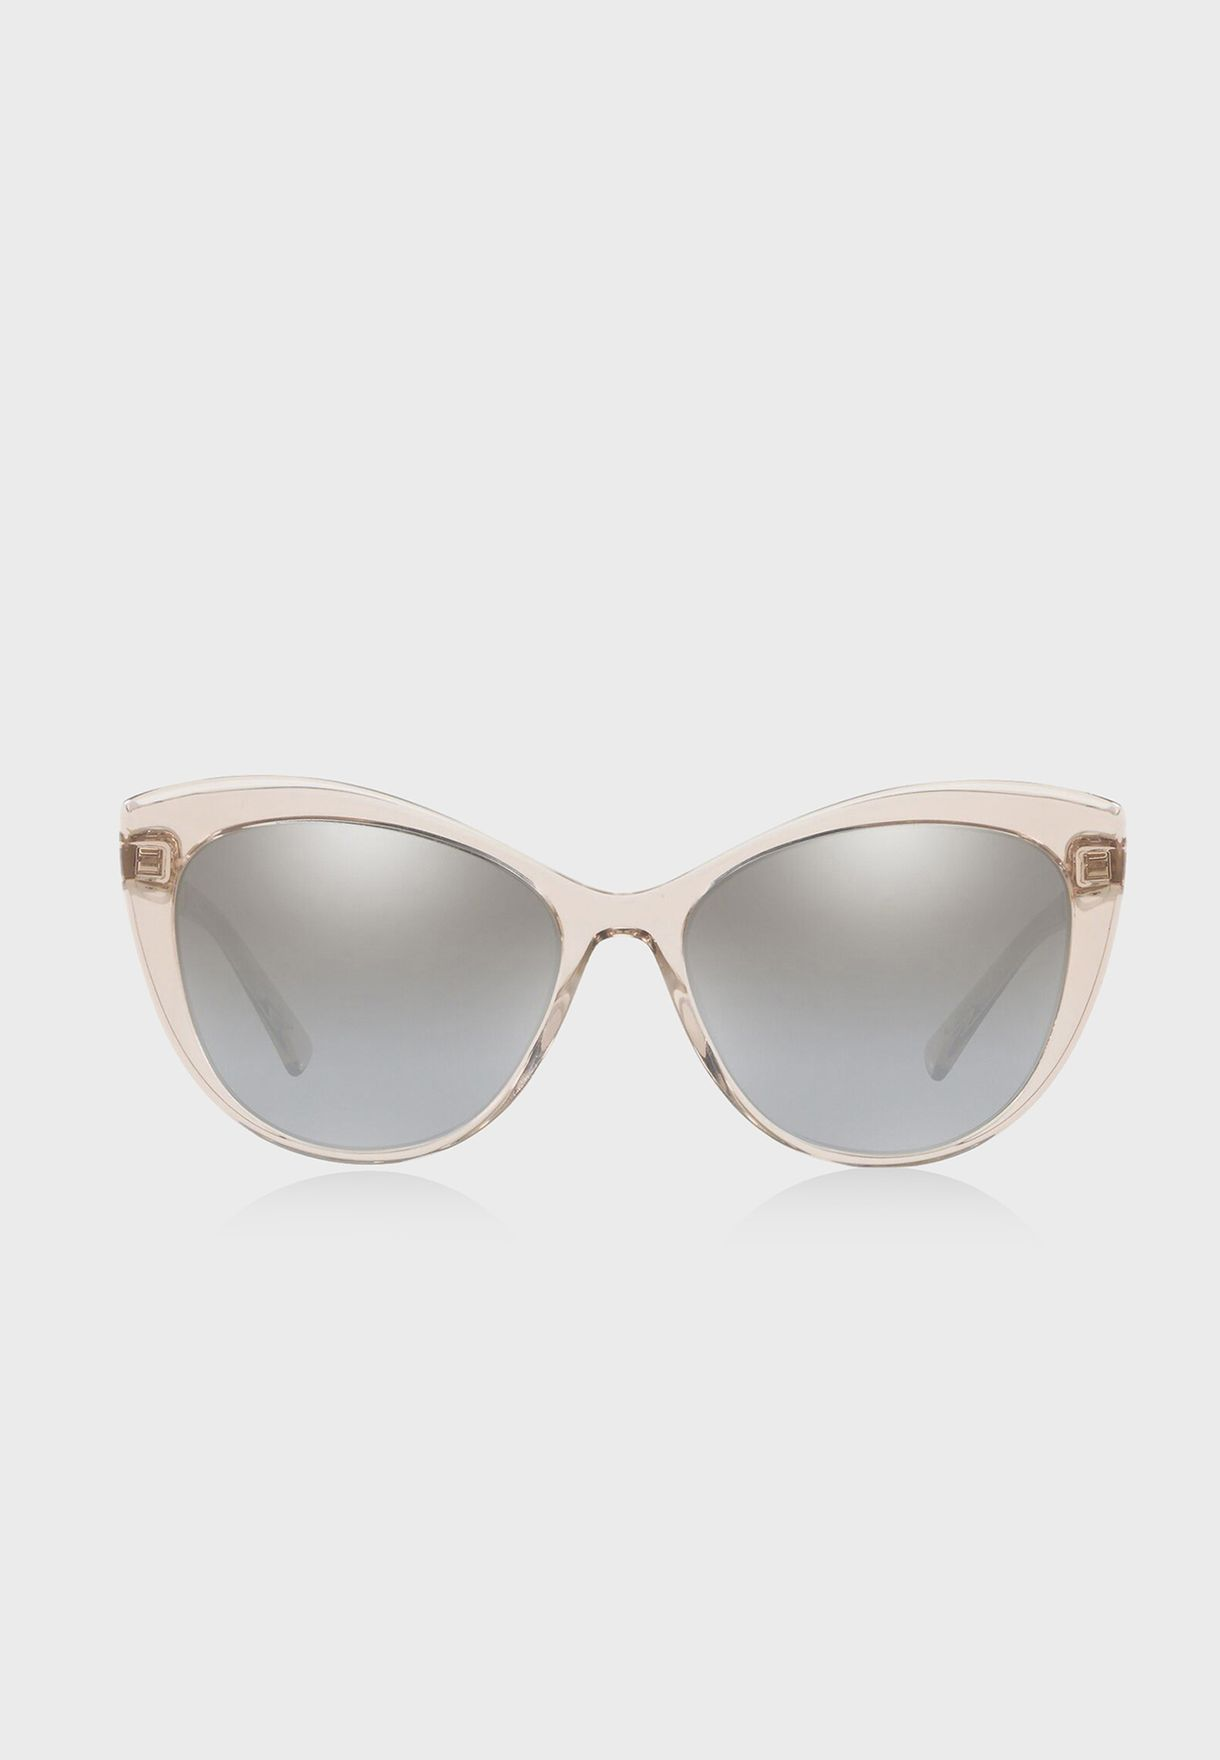 8292ece22c Shop Versace clear Cats Eyes Sunglasses 8.05367E+12 for Women in UAE ...